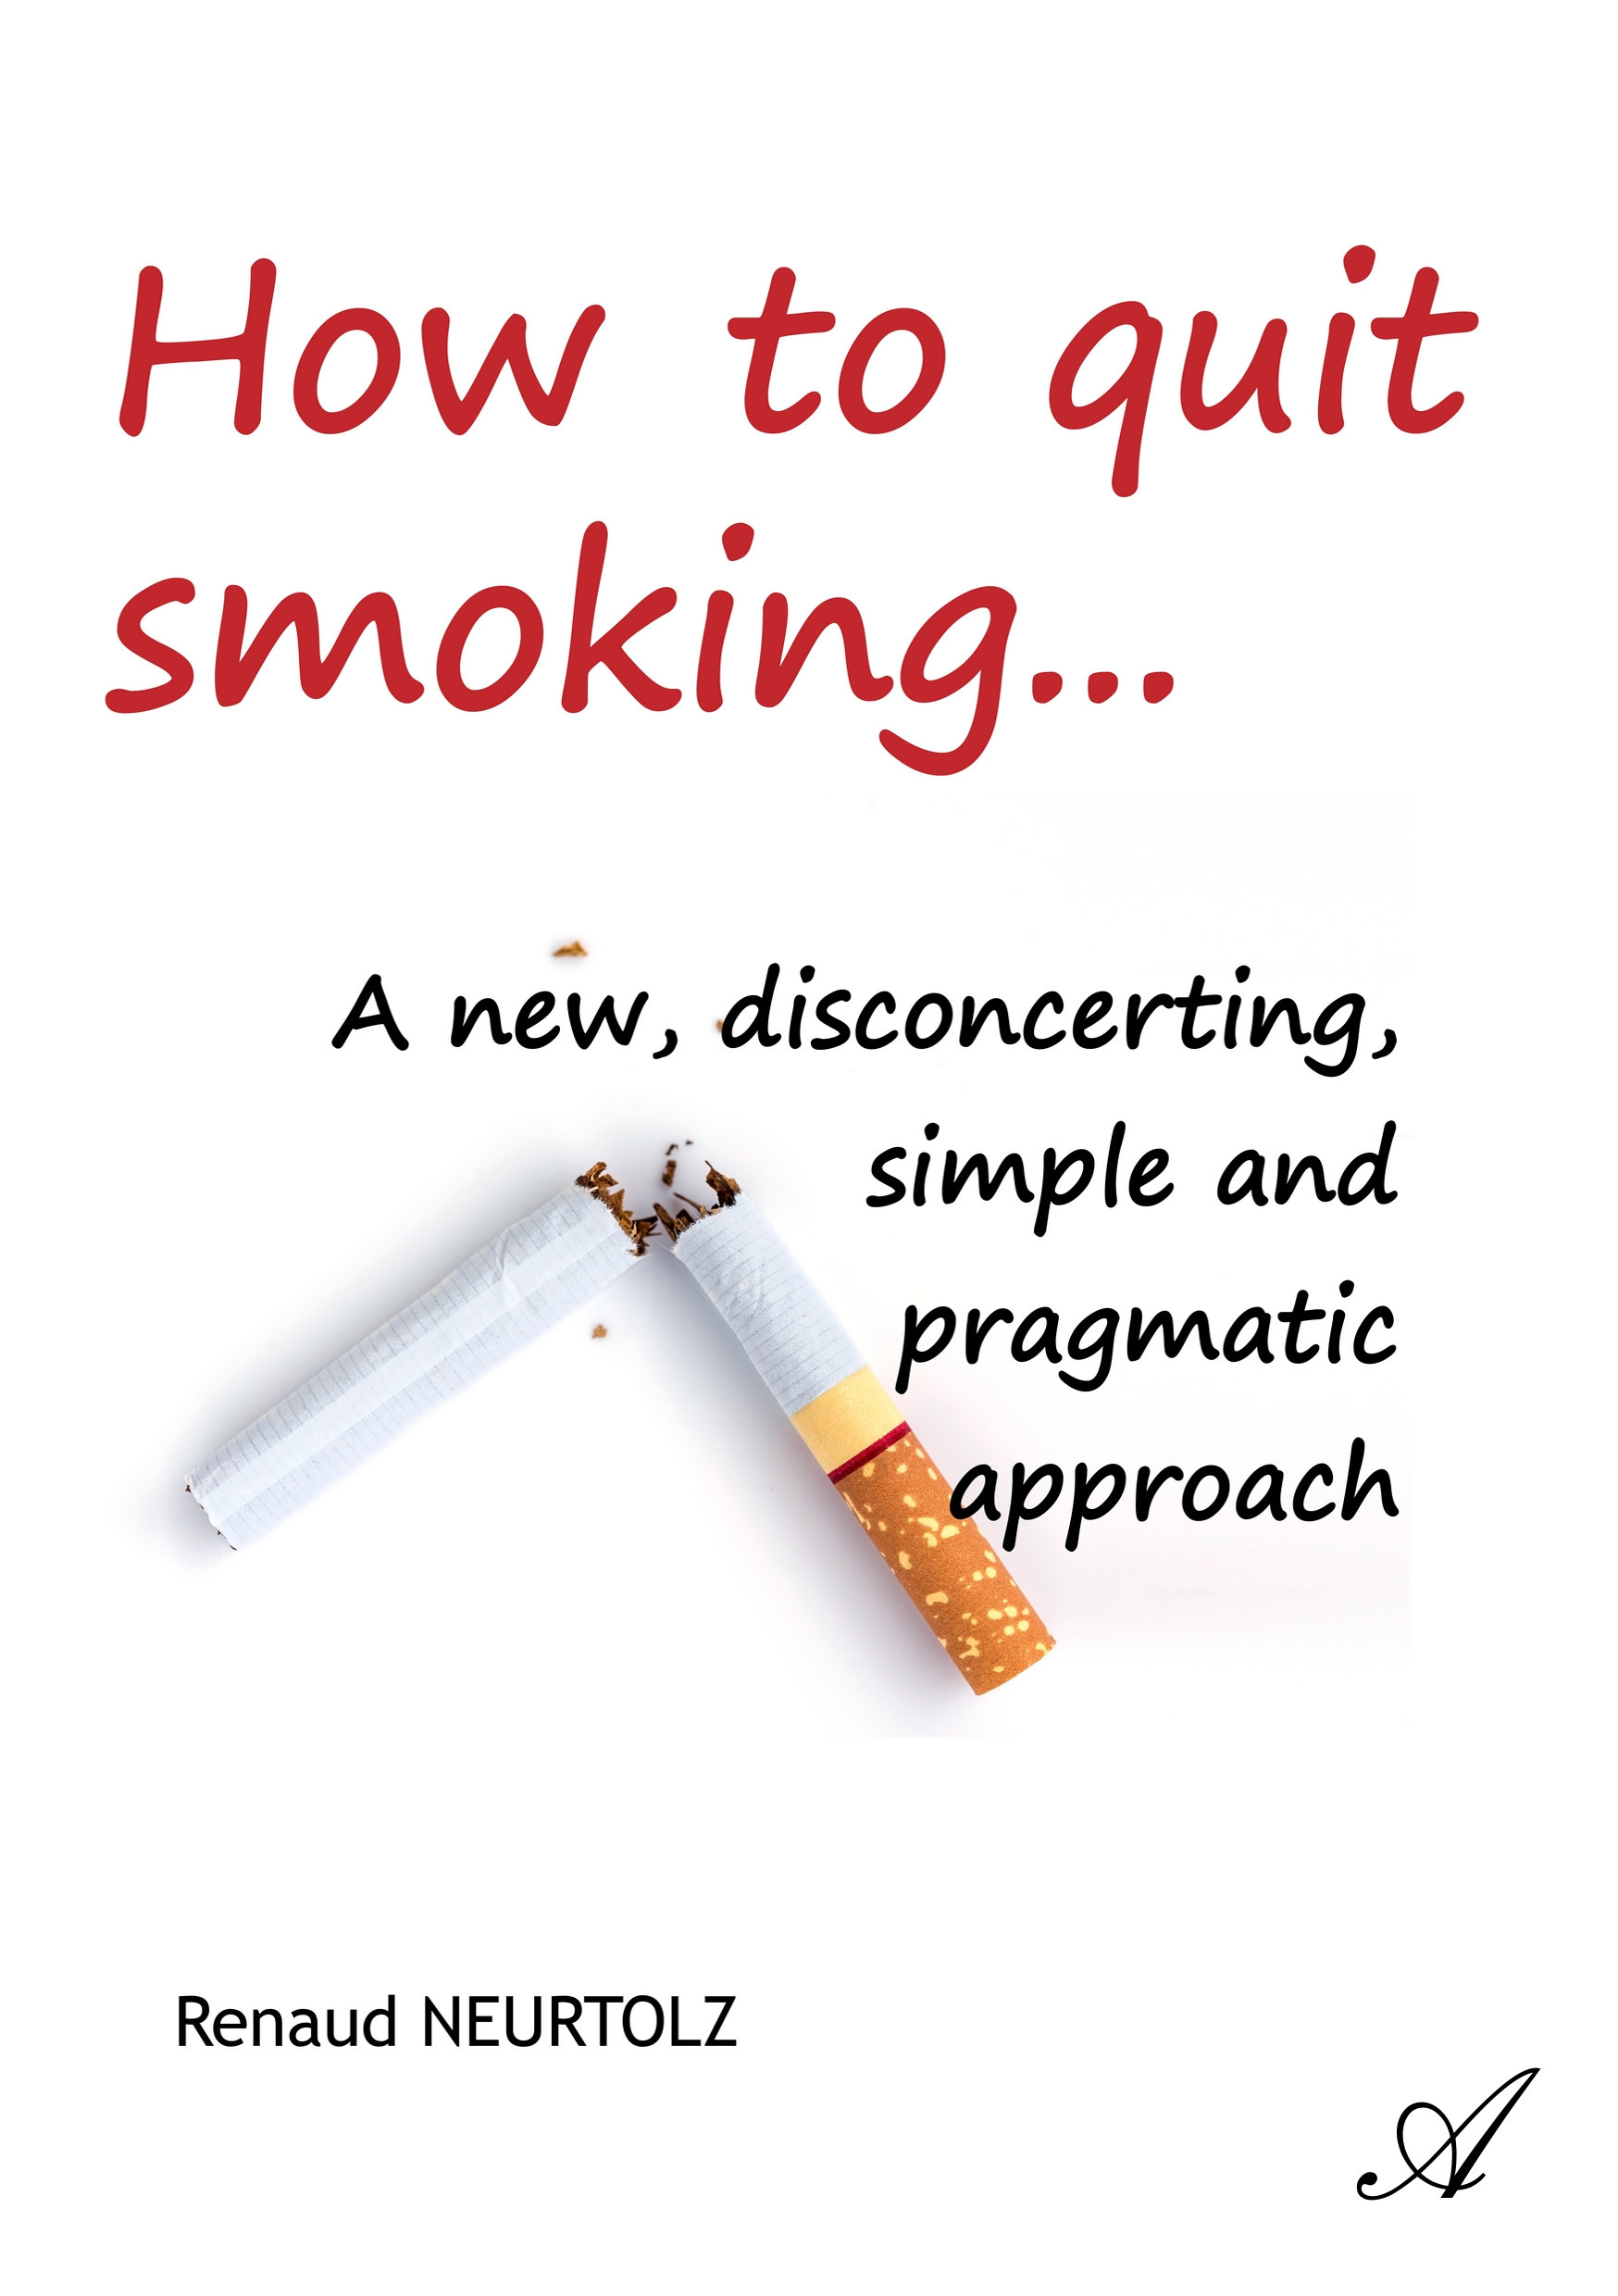 How to quit smoking...